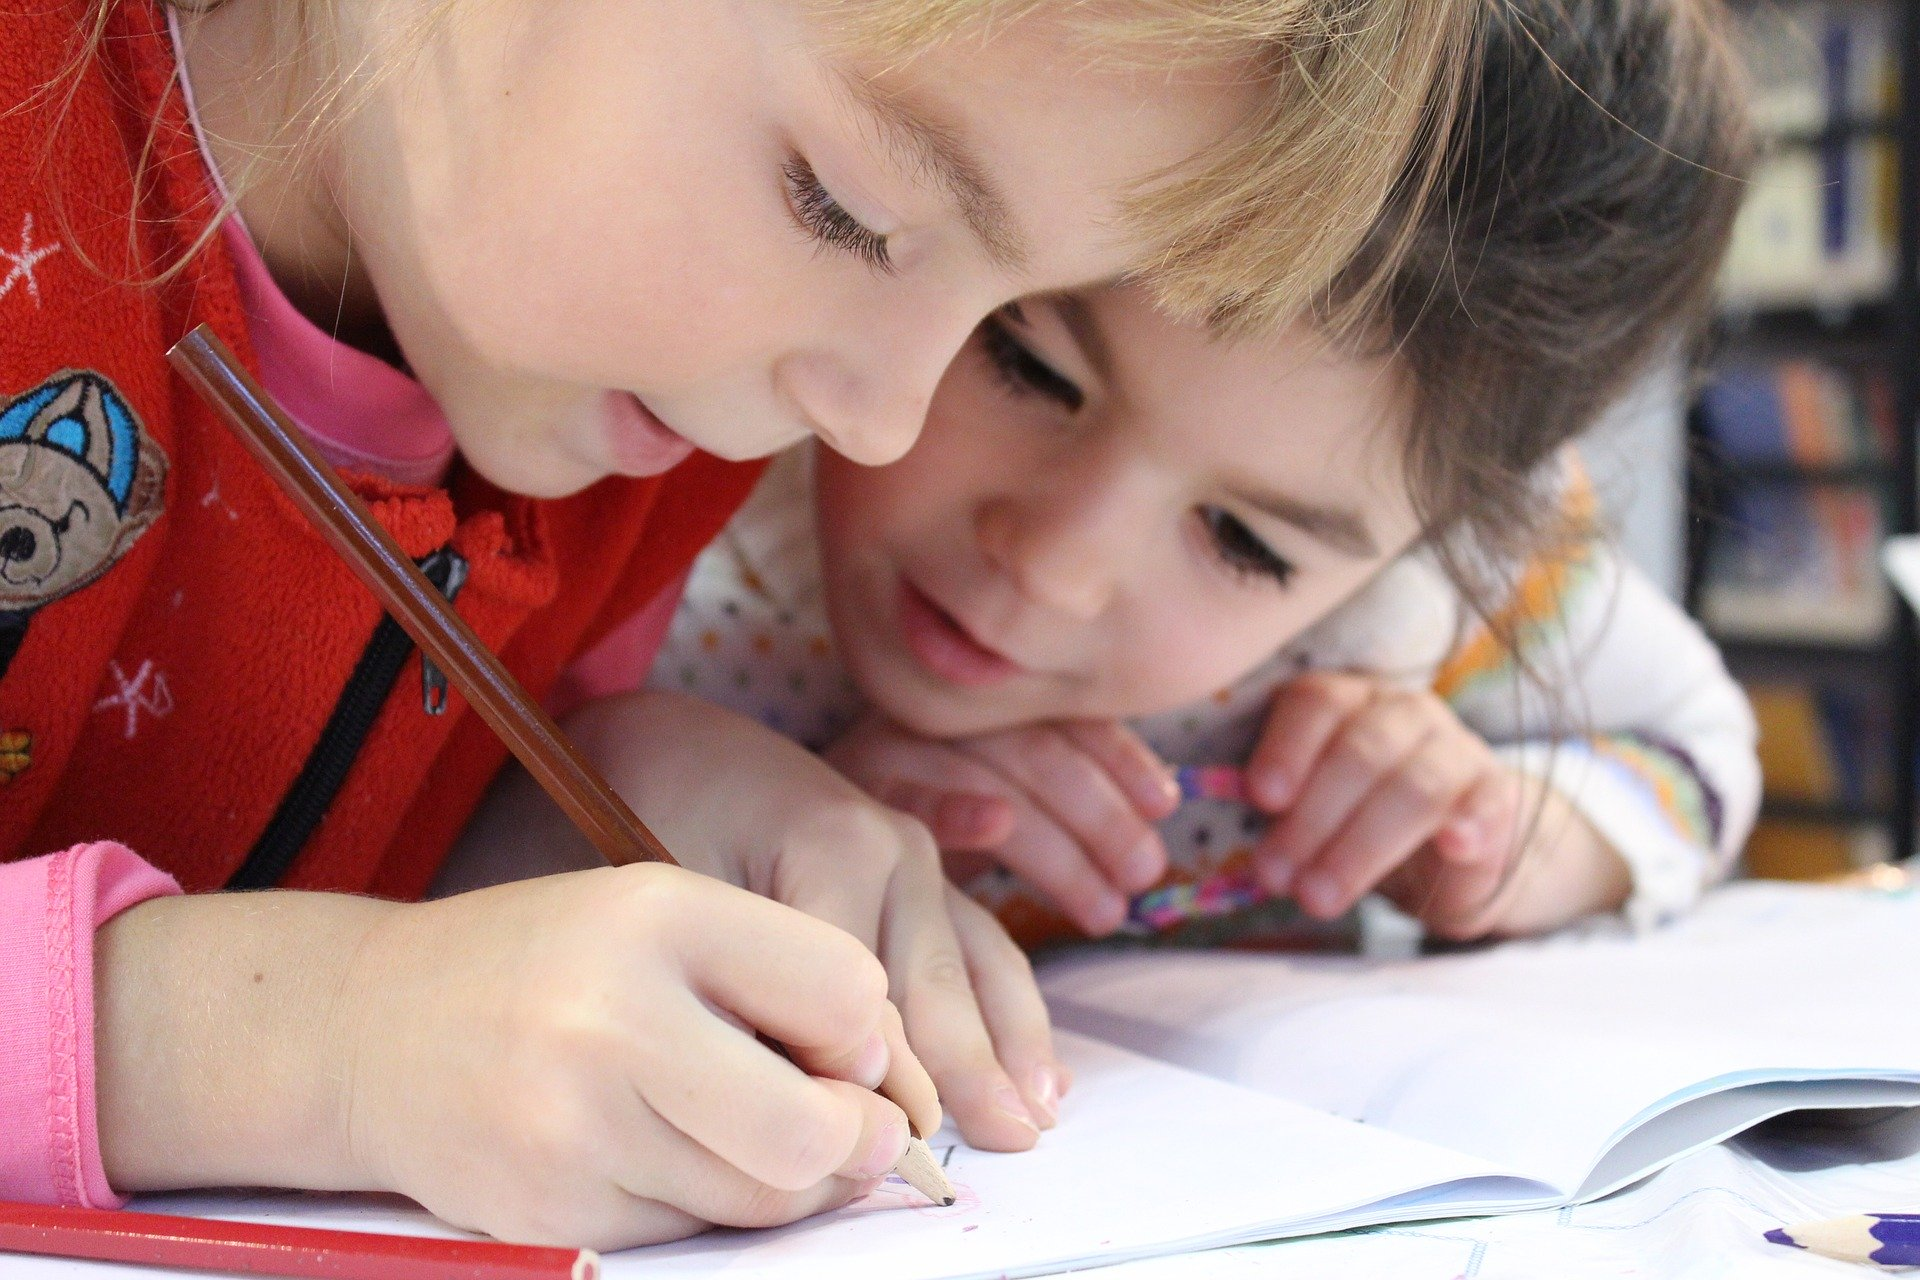 kids learning how to read and write